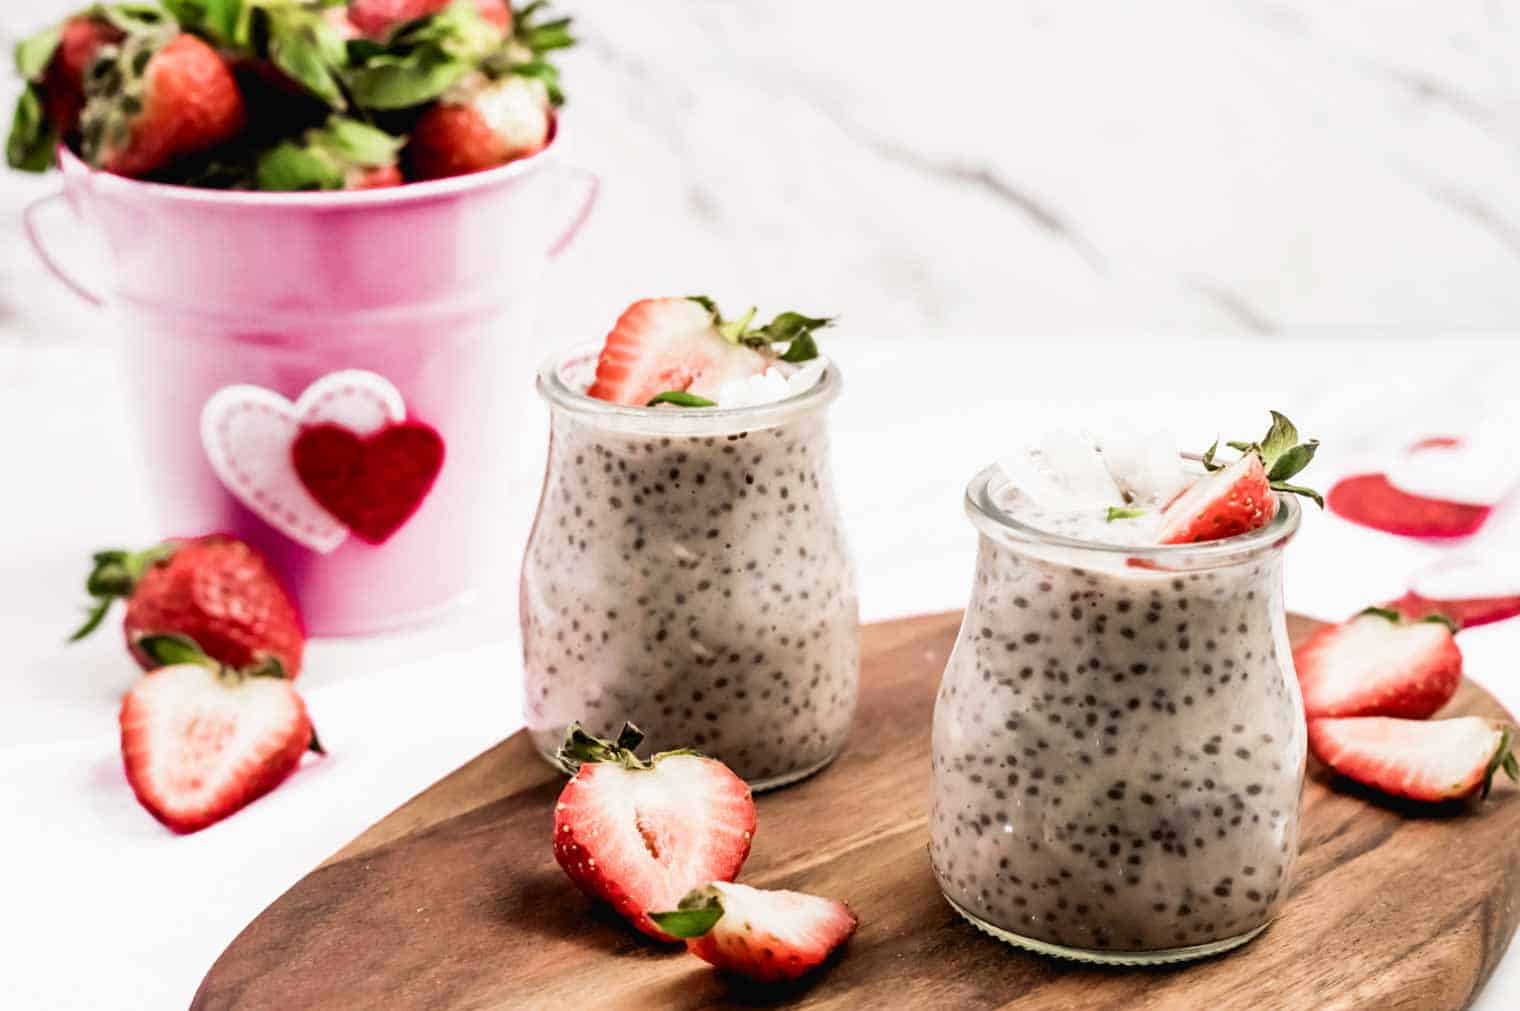 strawberry chia seed pudding in two jars, on cutting board with cut strawberries around